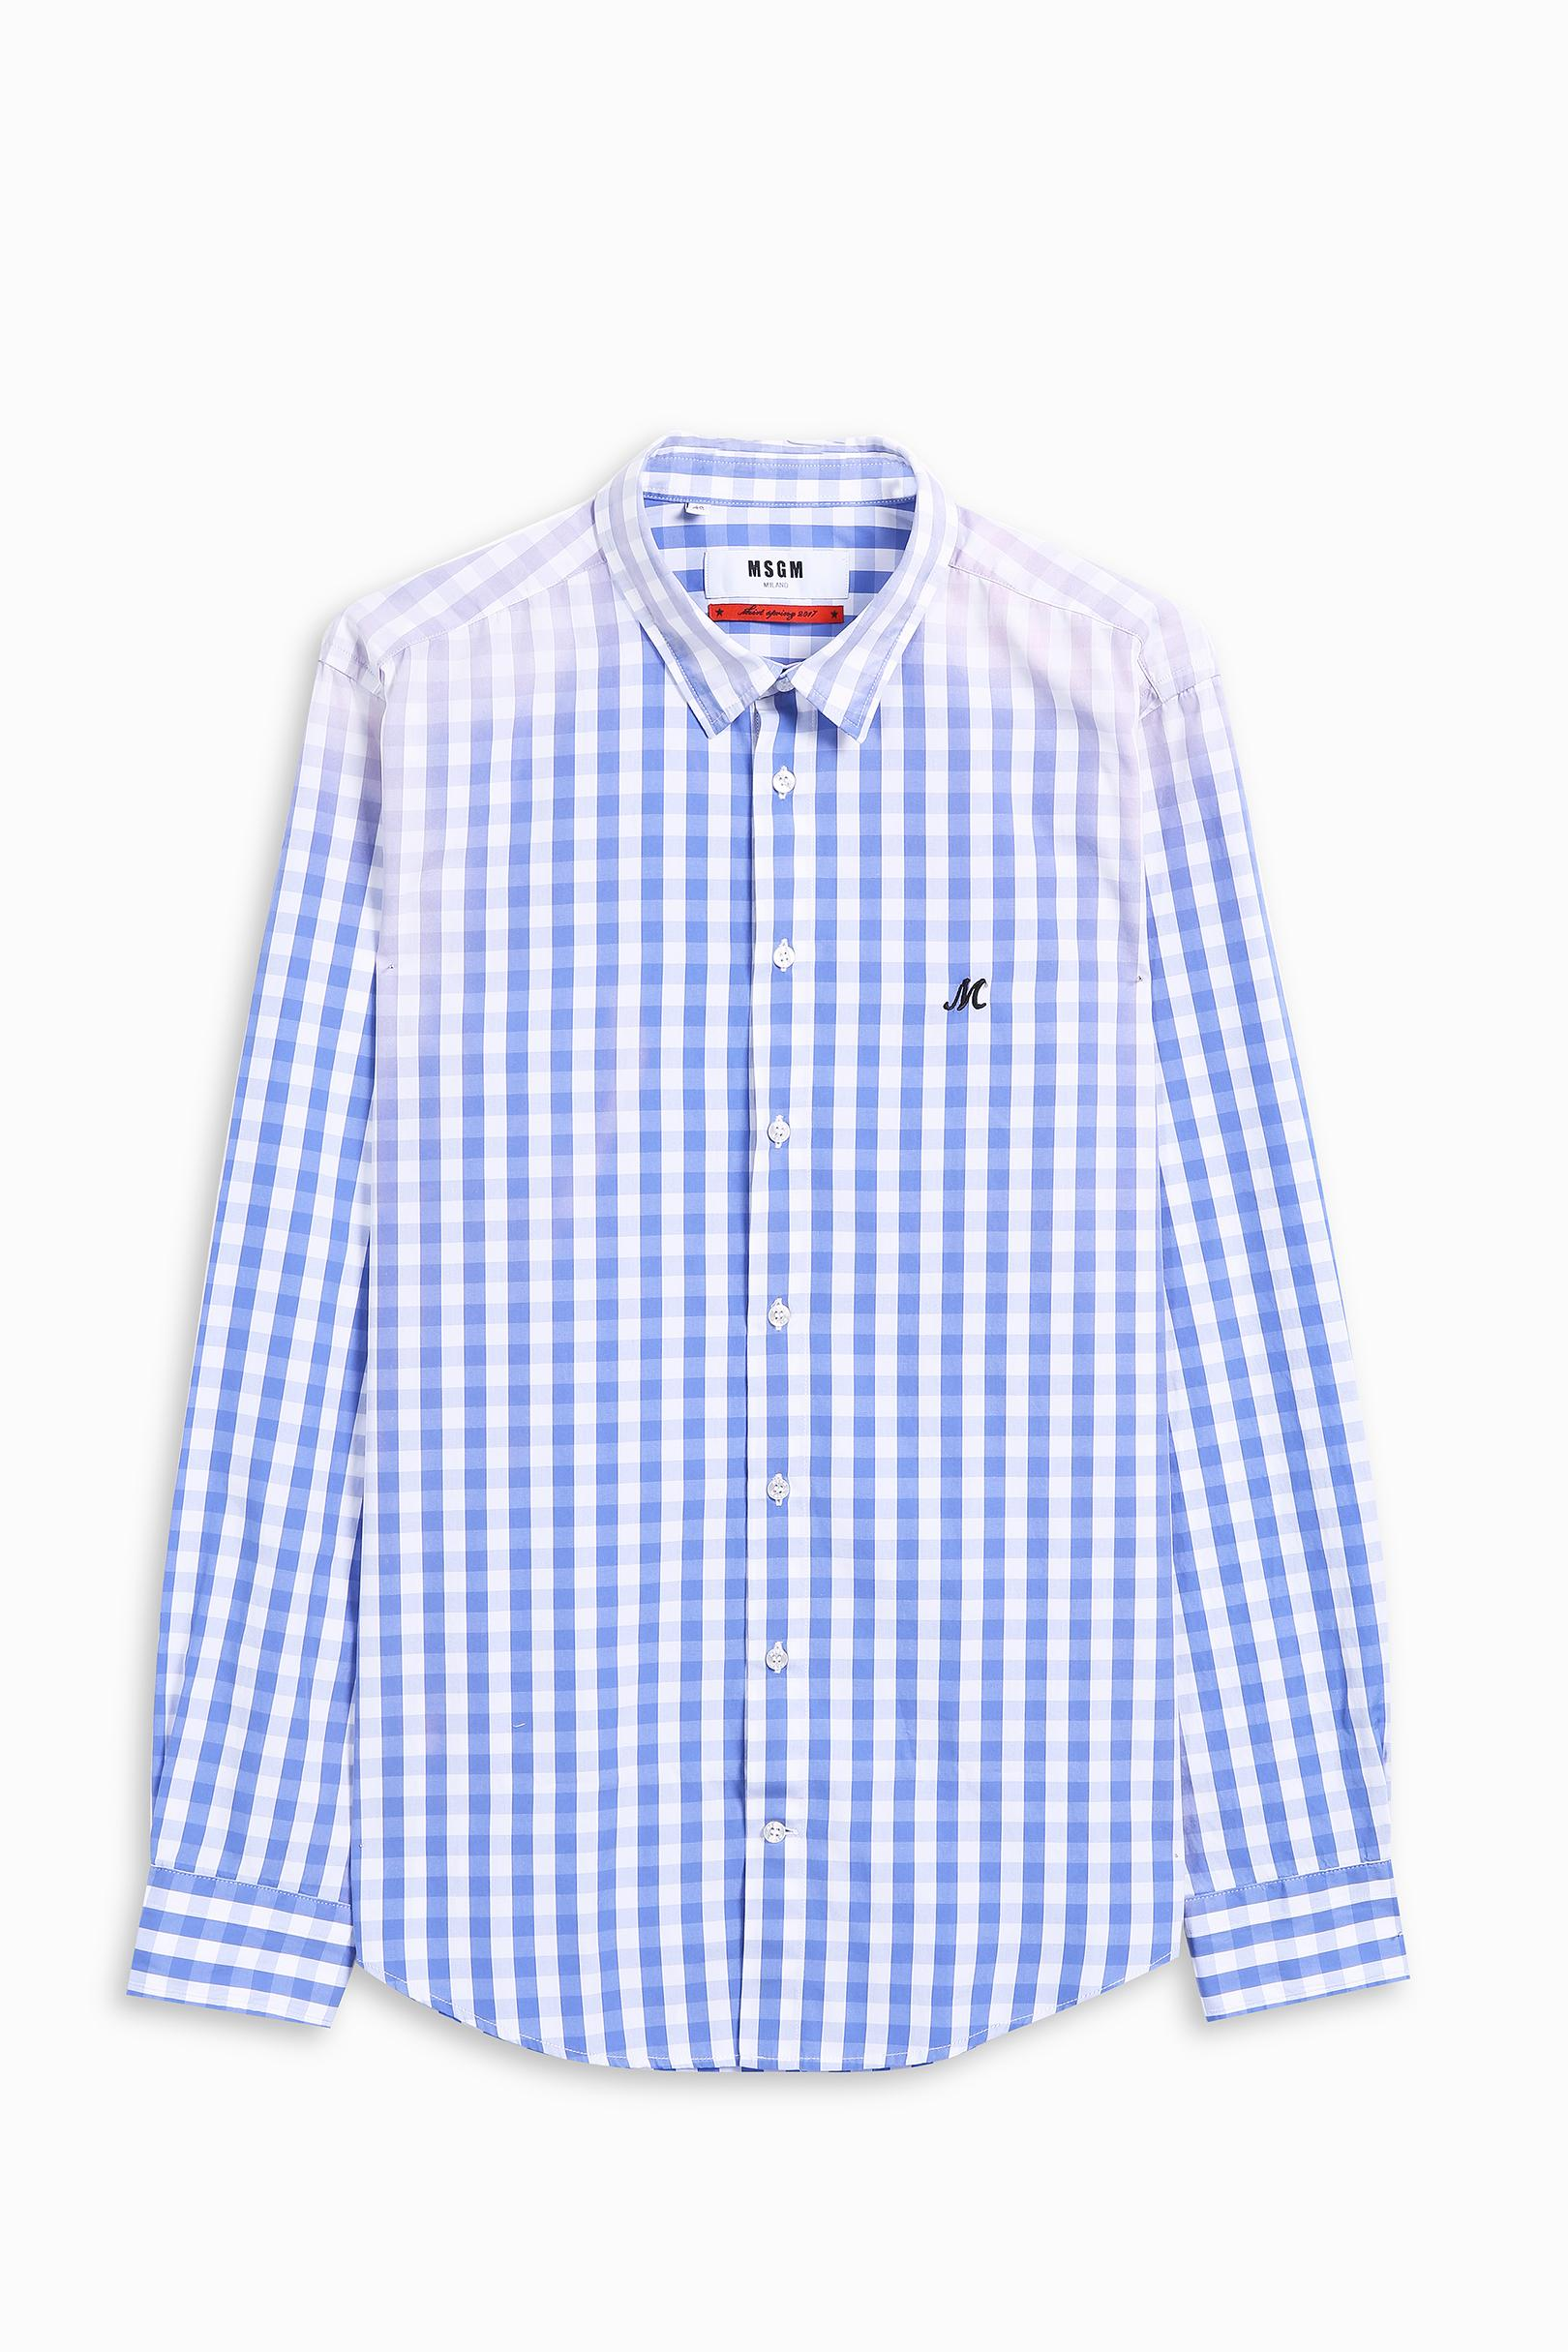 Msgm gingham shirt in blue for men lyst for Mens blue gingham shirt